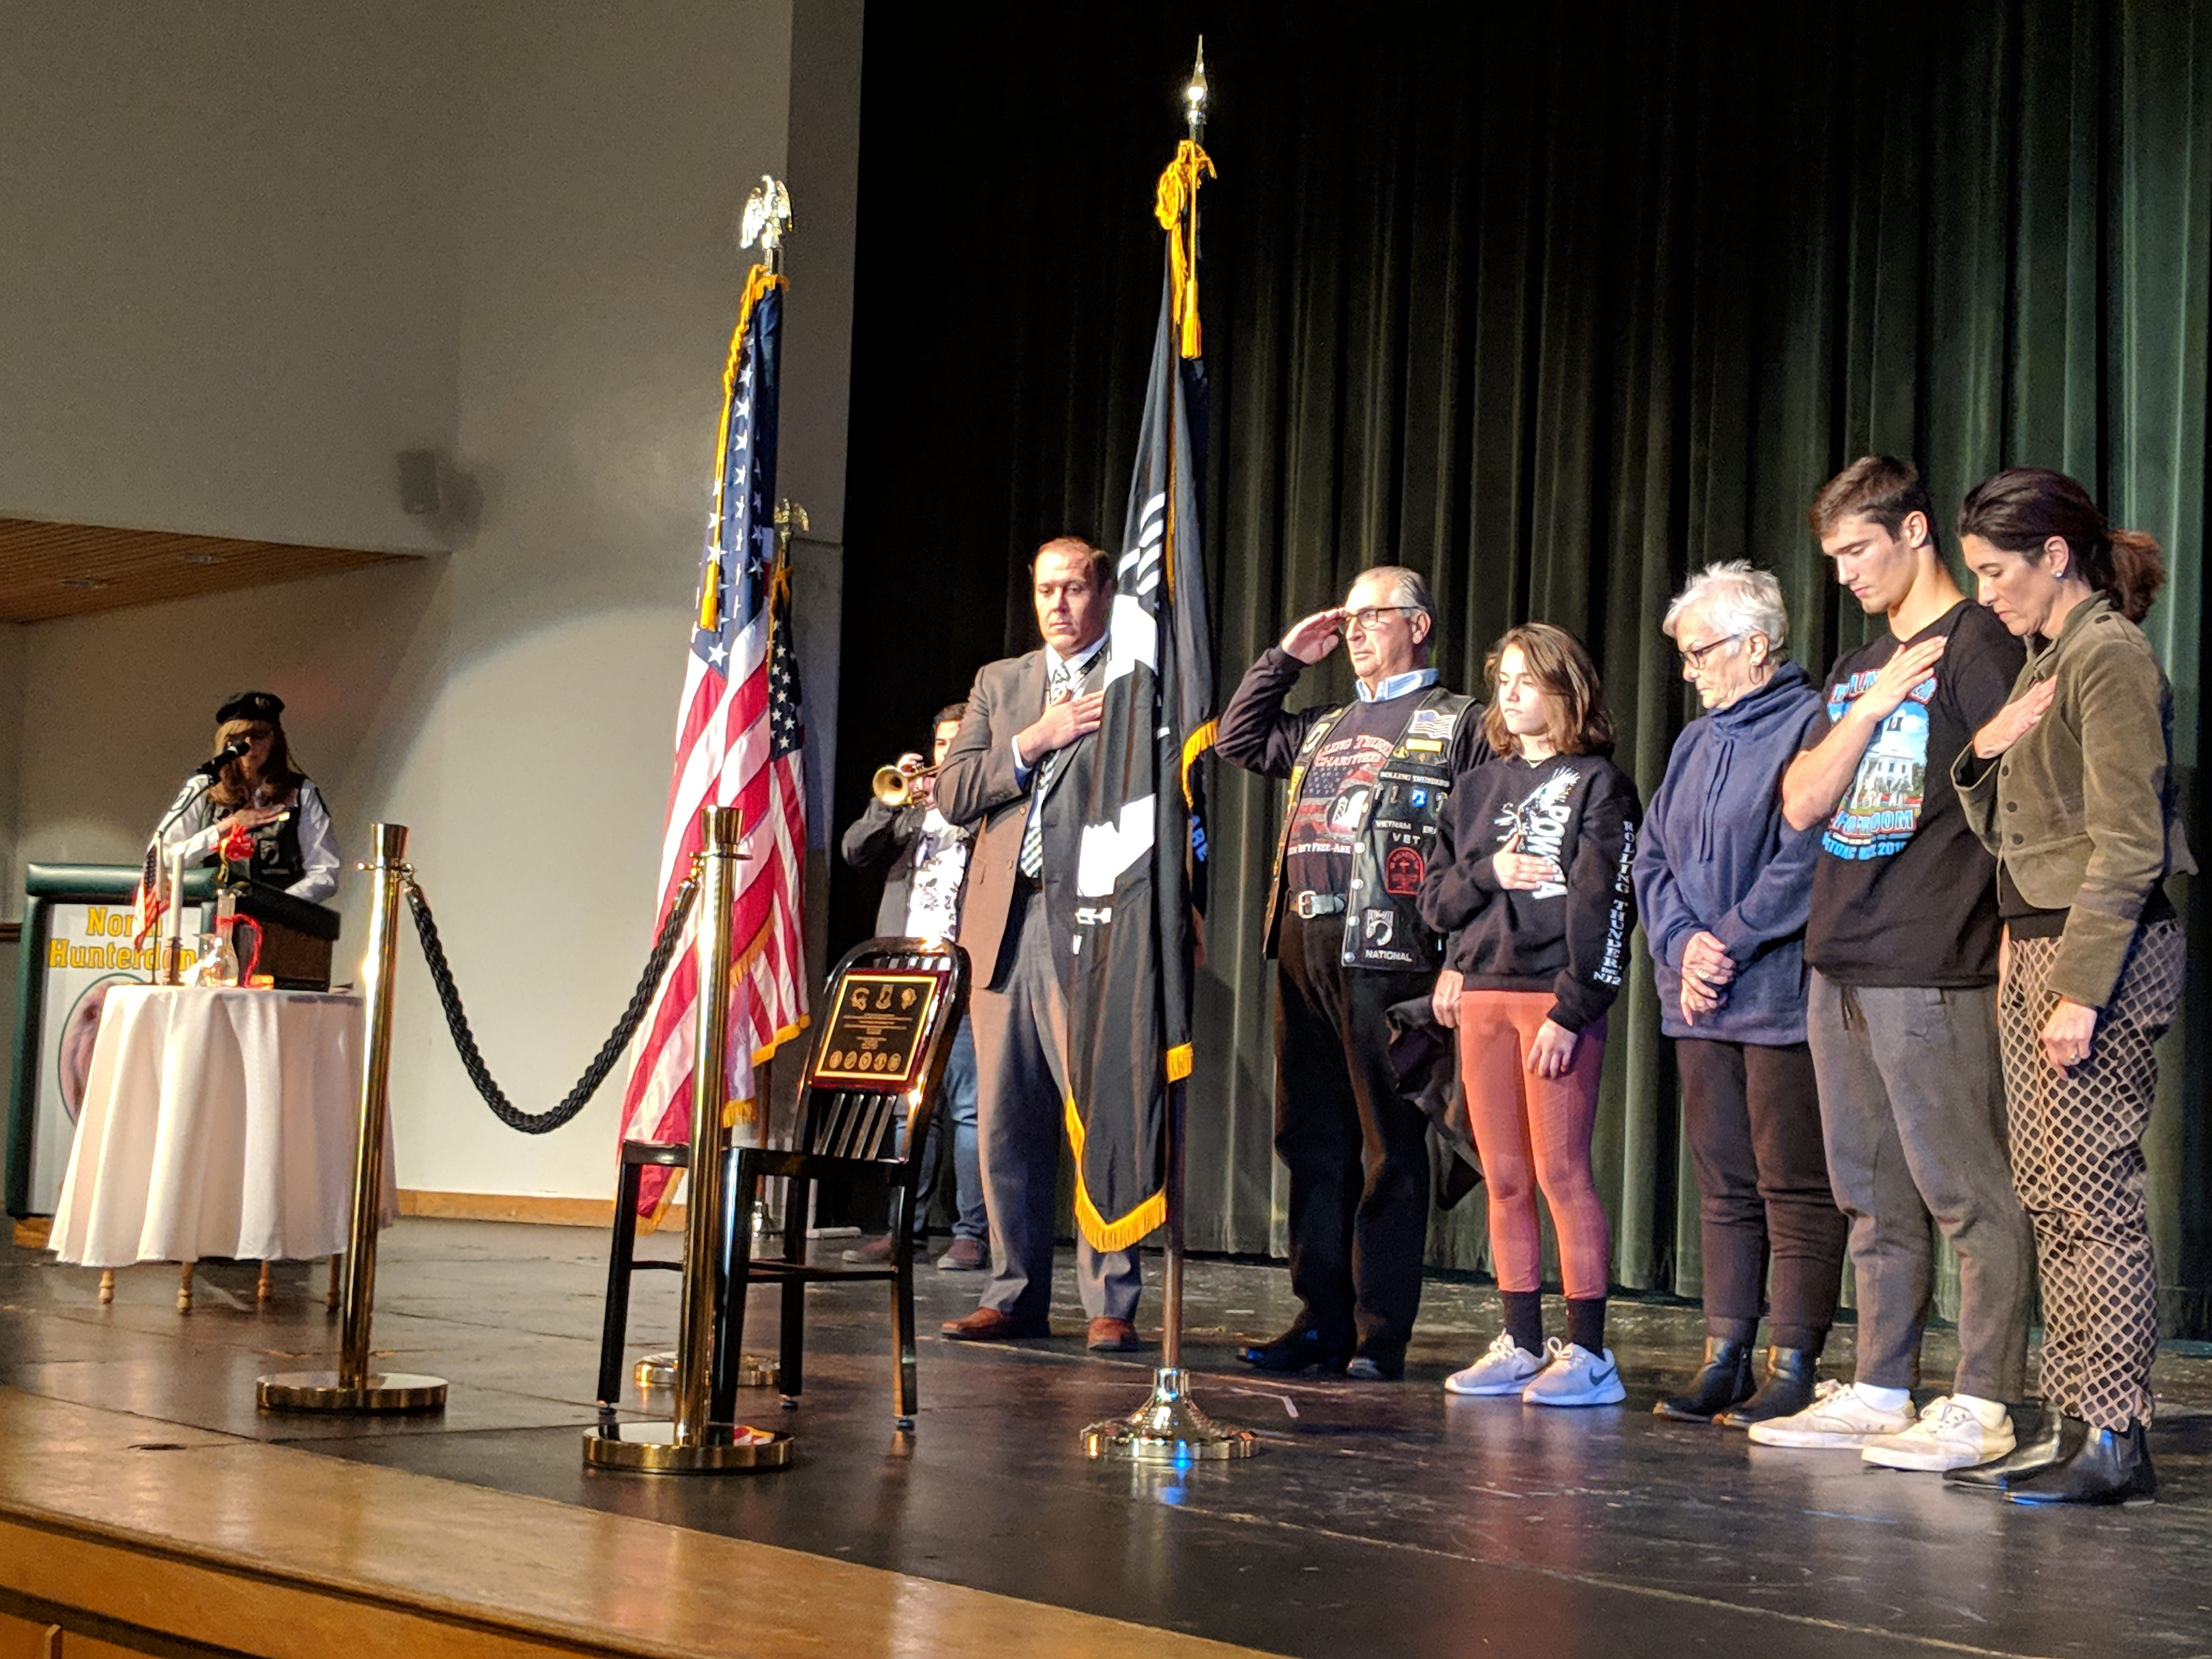 The chair and flags in the display case on 2nd floor; unveiling of the chair by Dr. Greg Cottrell, Gus Dante and the Dante Family; a moment of silence while senior Michael Kane of Franklin Township played taps after the cloth was taken off the chair.